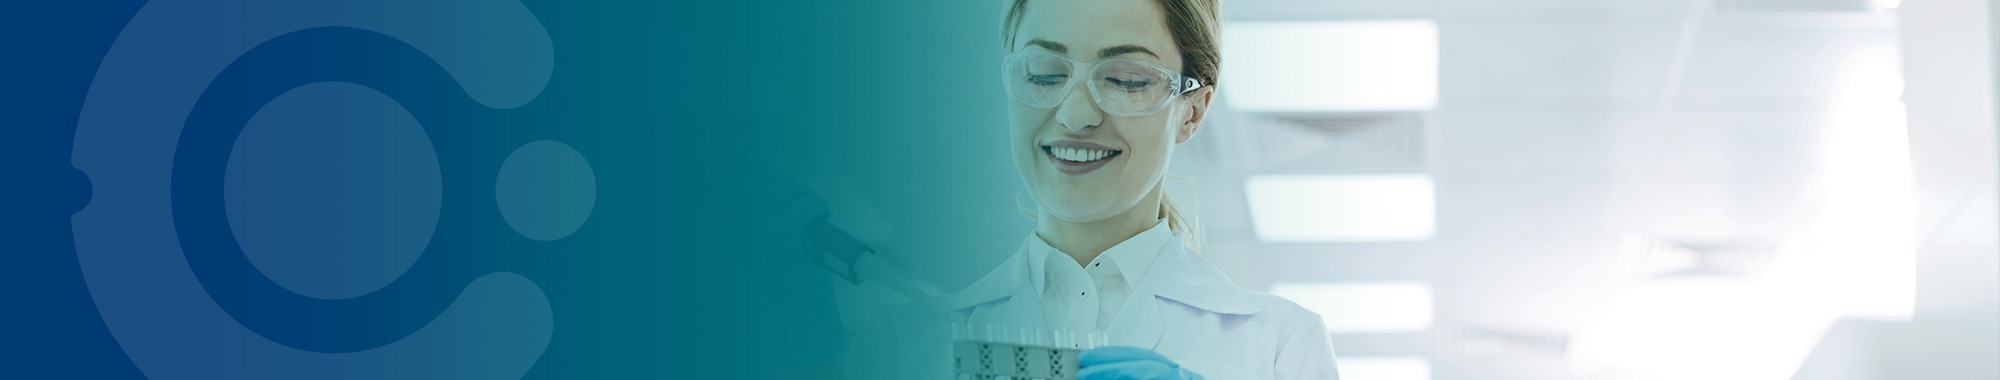 Cpl Life Science Recruitment